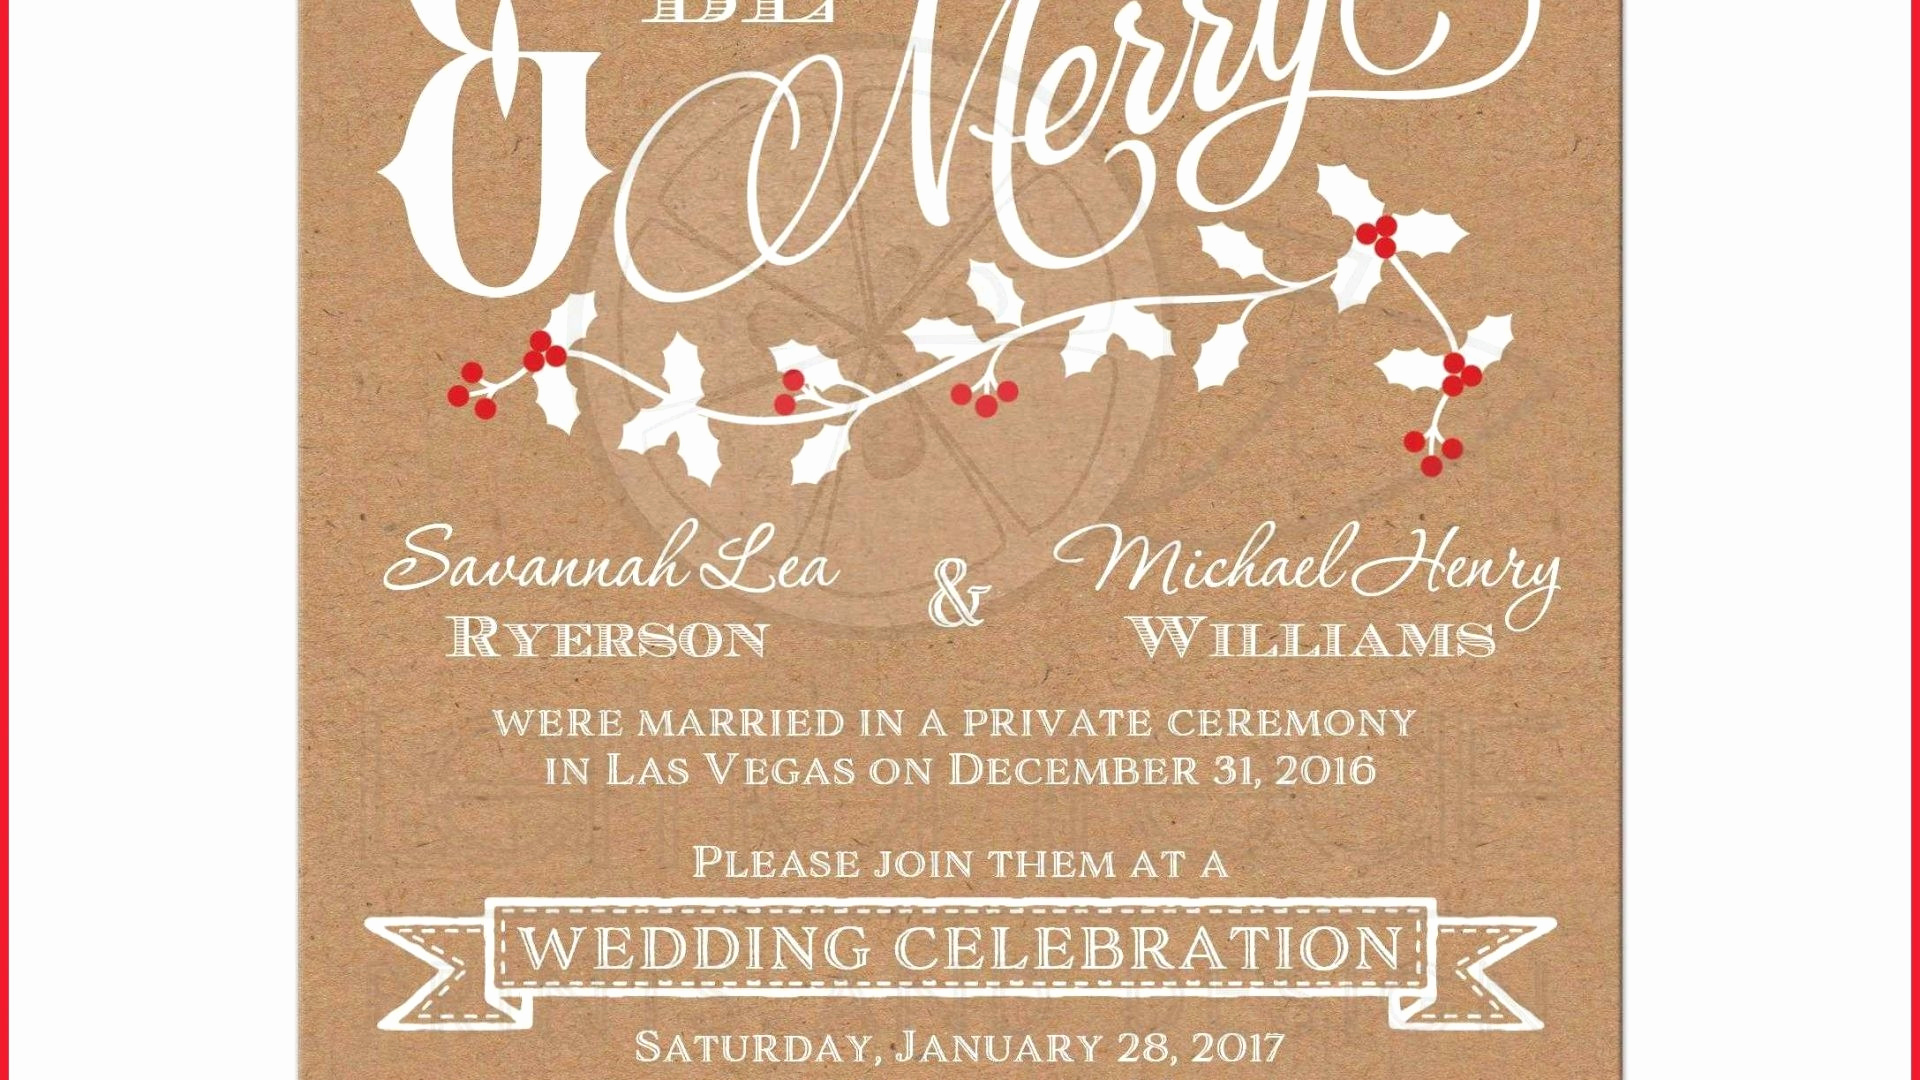 Private Wedding Ceremony Invitation New 25 Private Ceremony Wedding Different